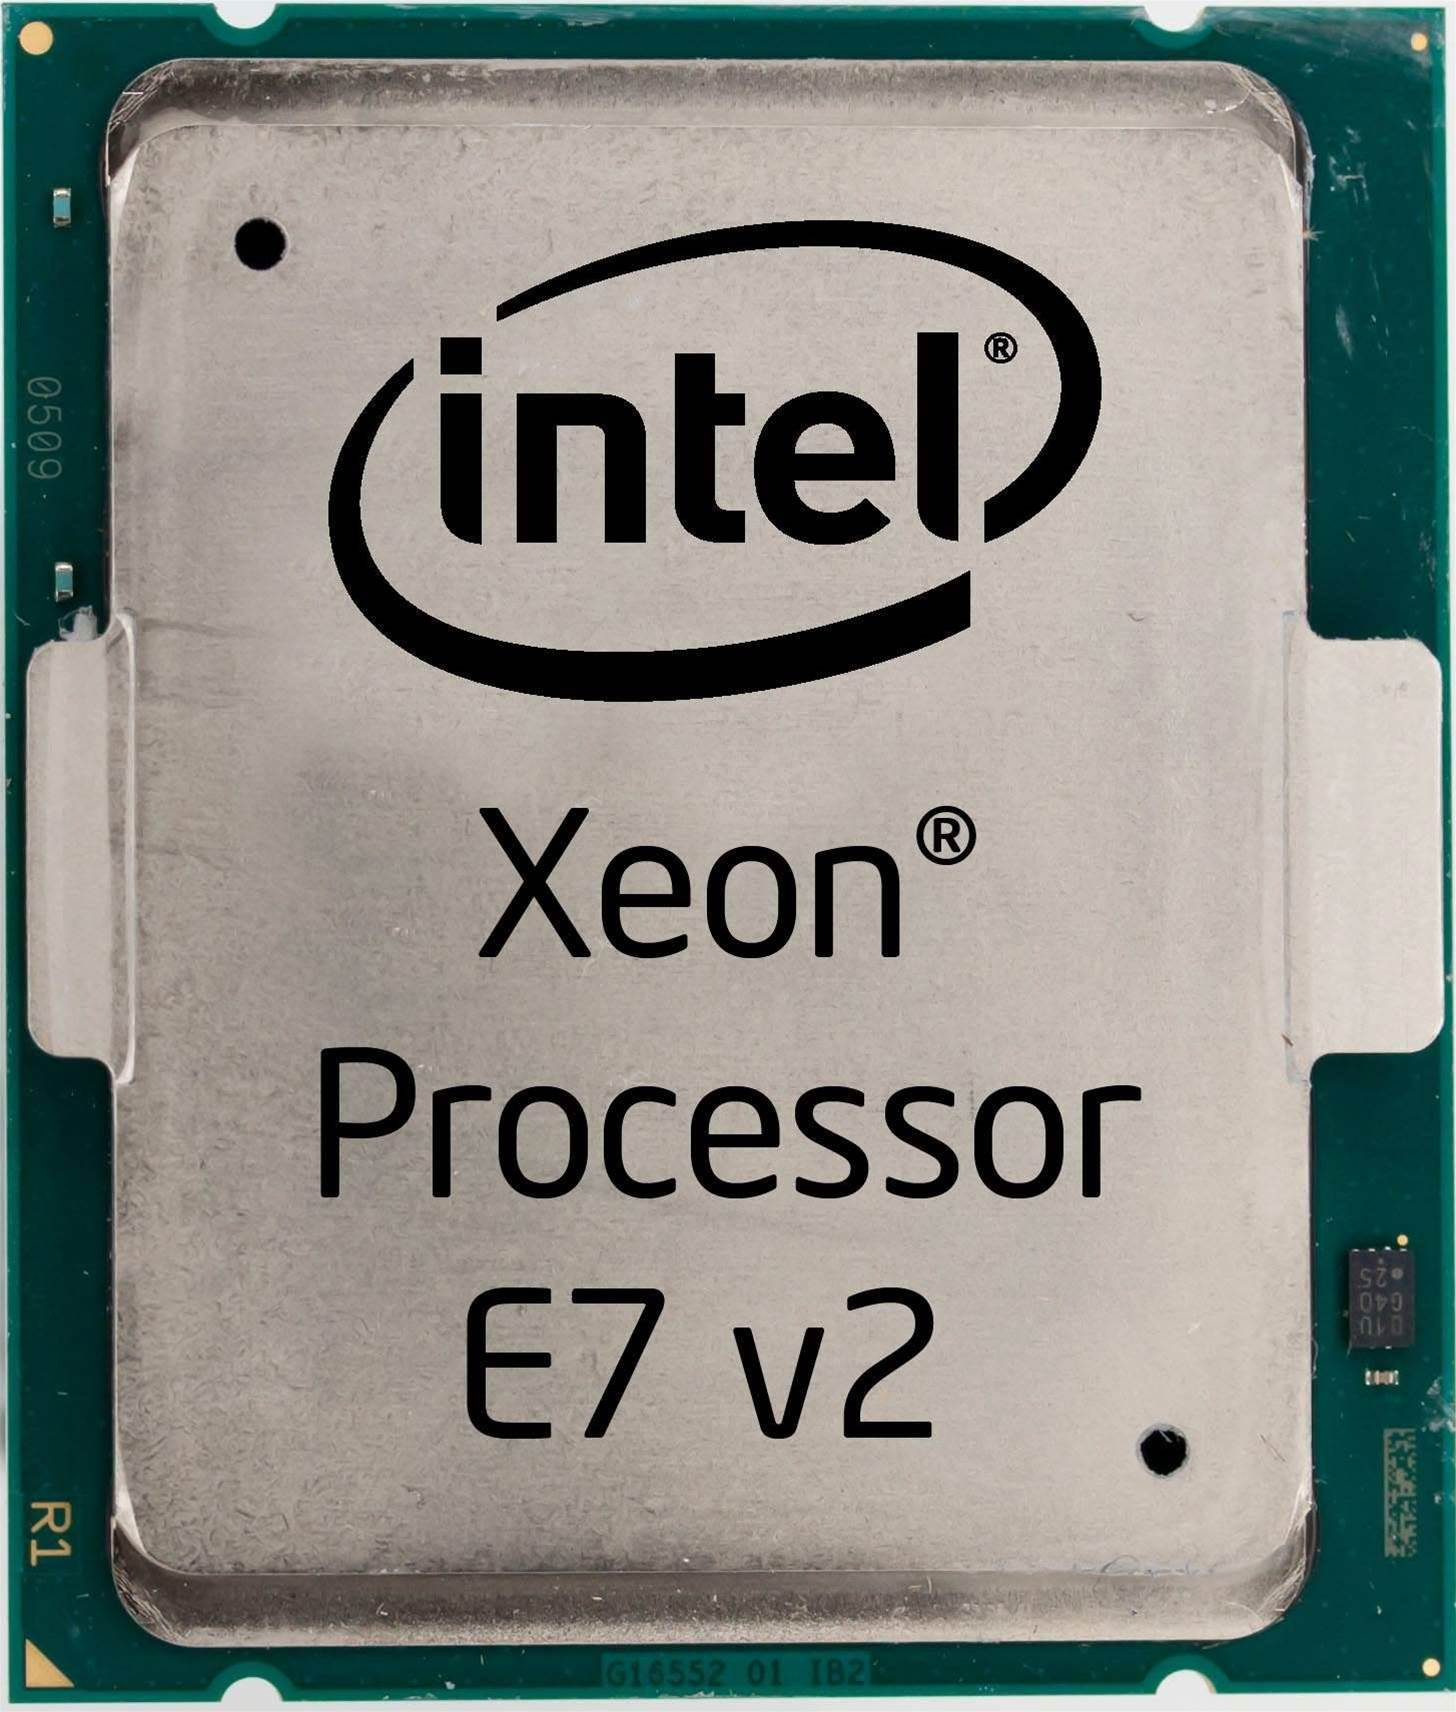 Intel's new Xeon processors take aim at big data